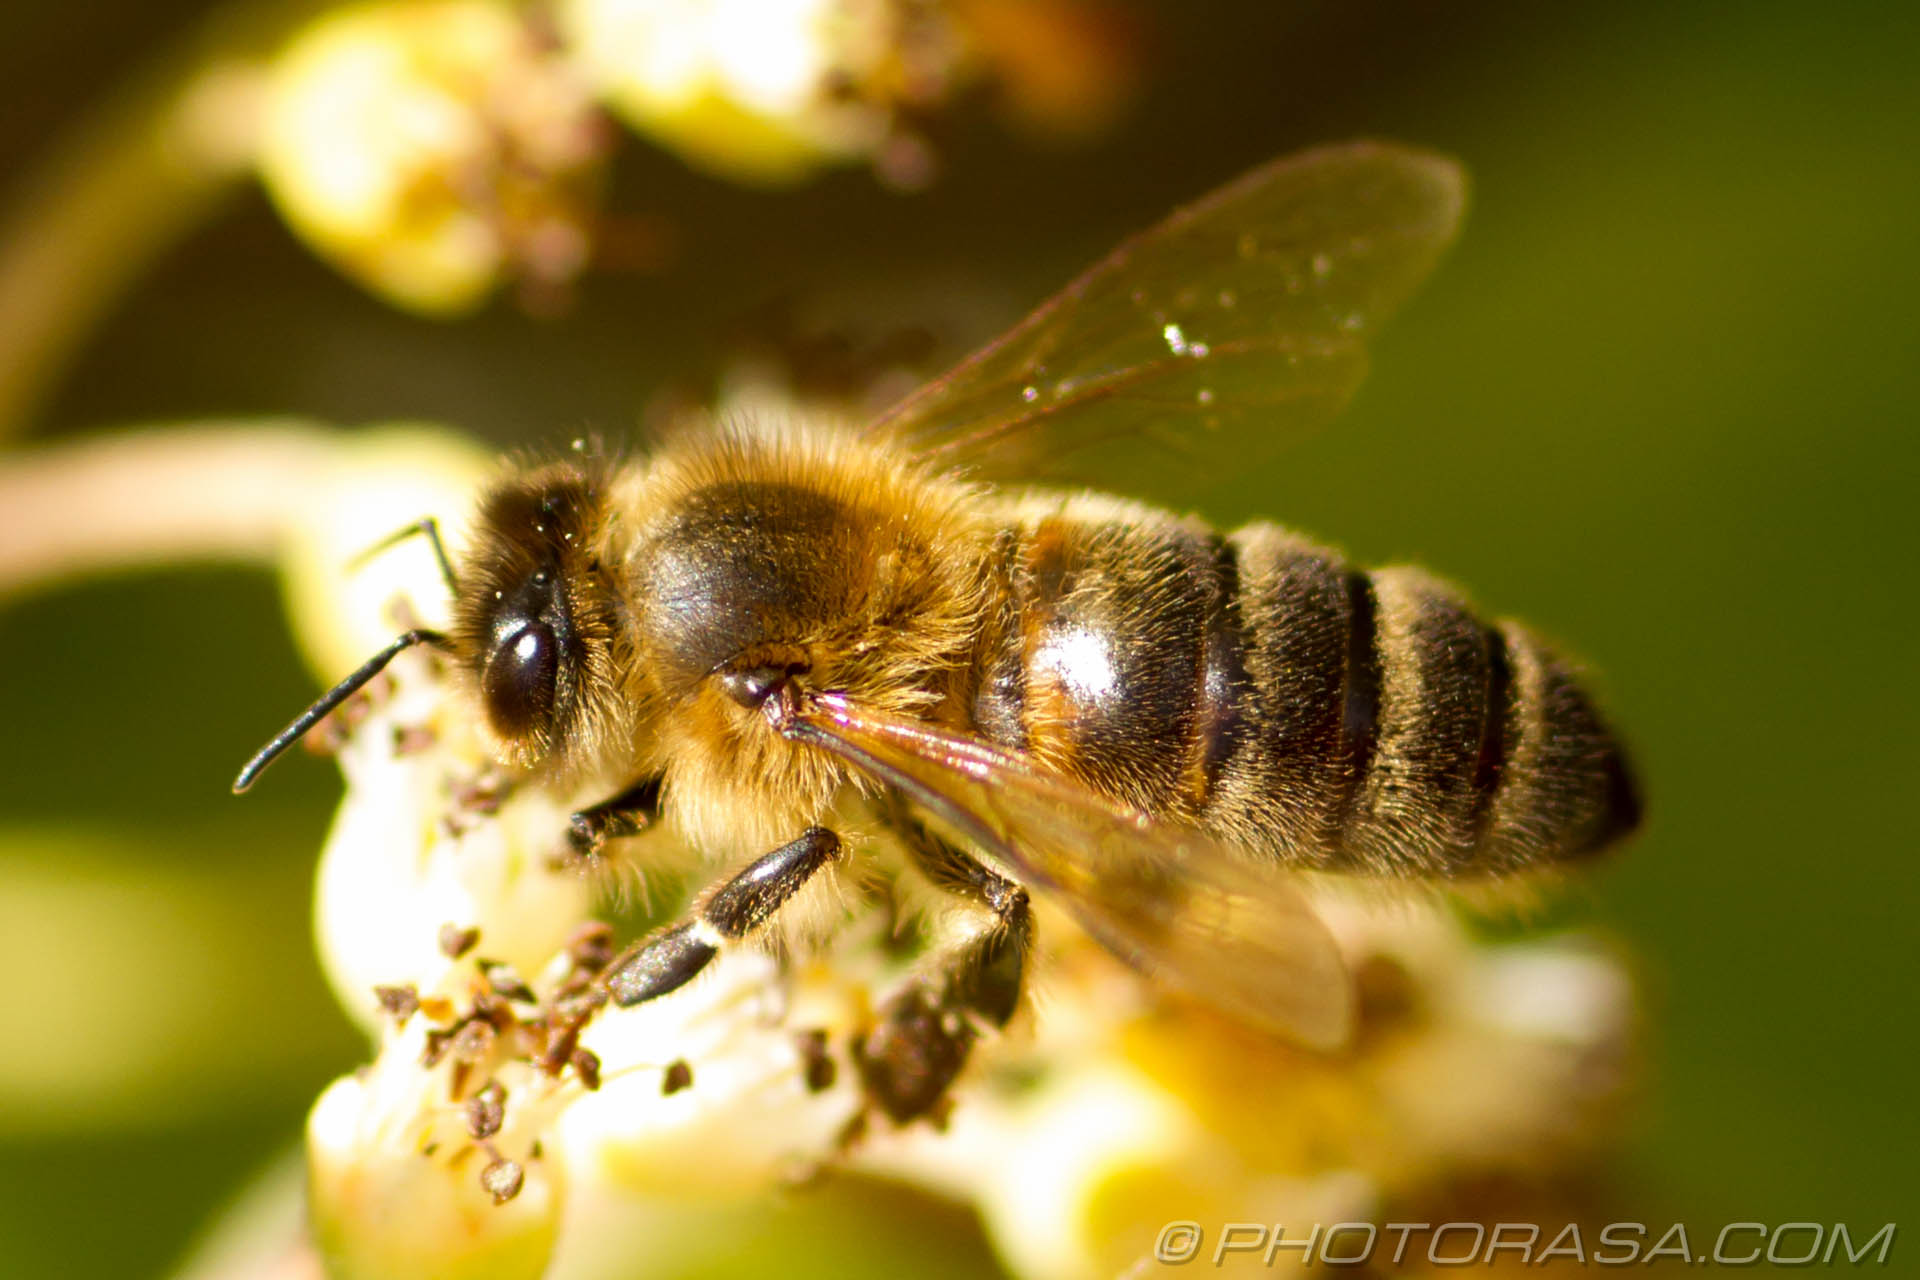 http://photorasa.com/honey-bees/honey-bee/